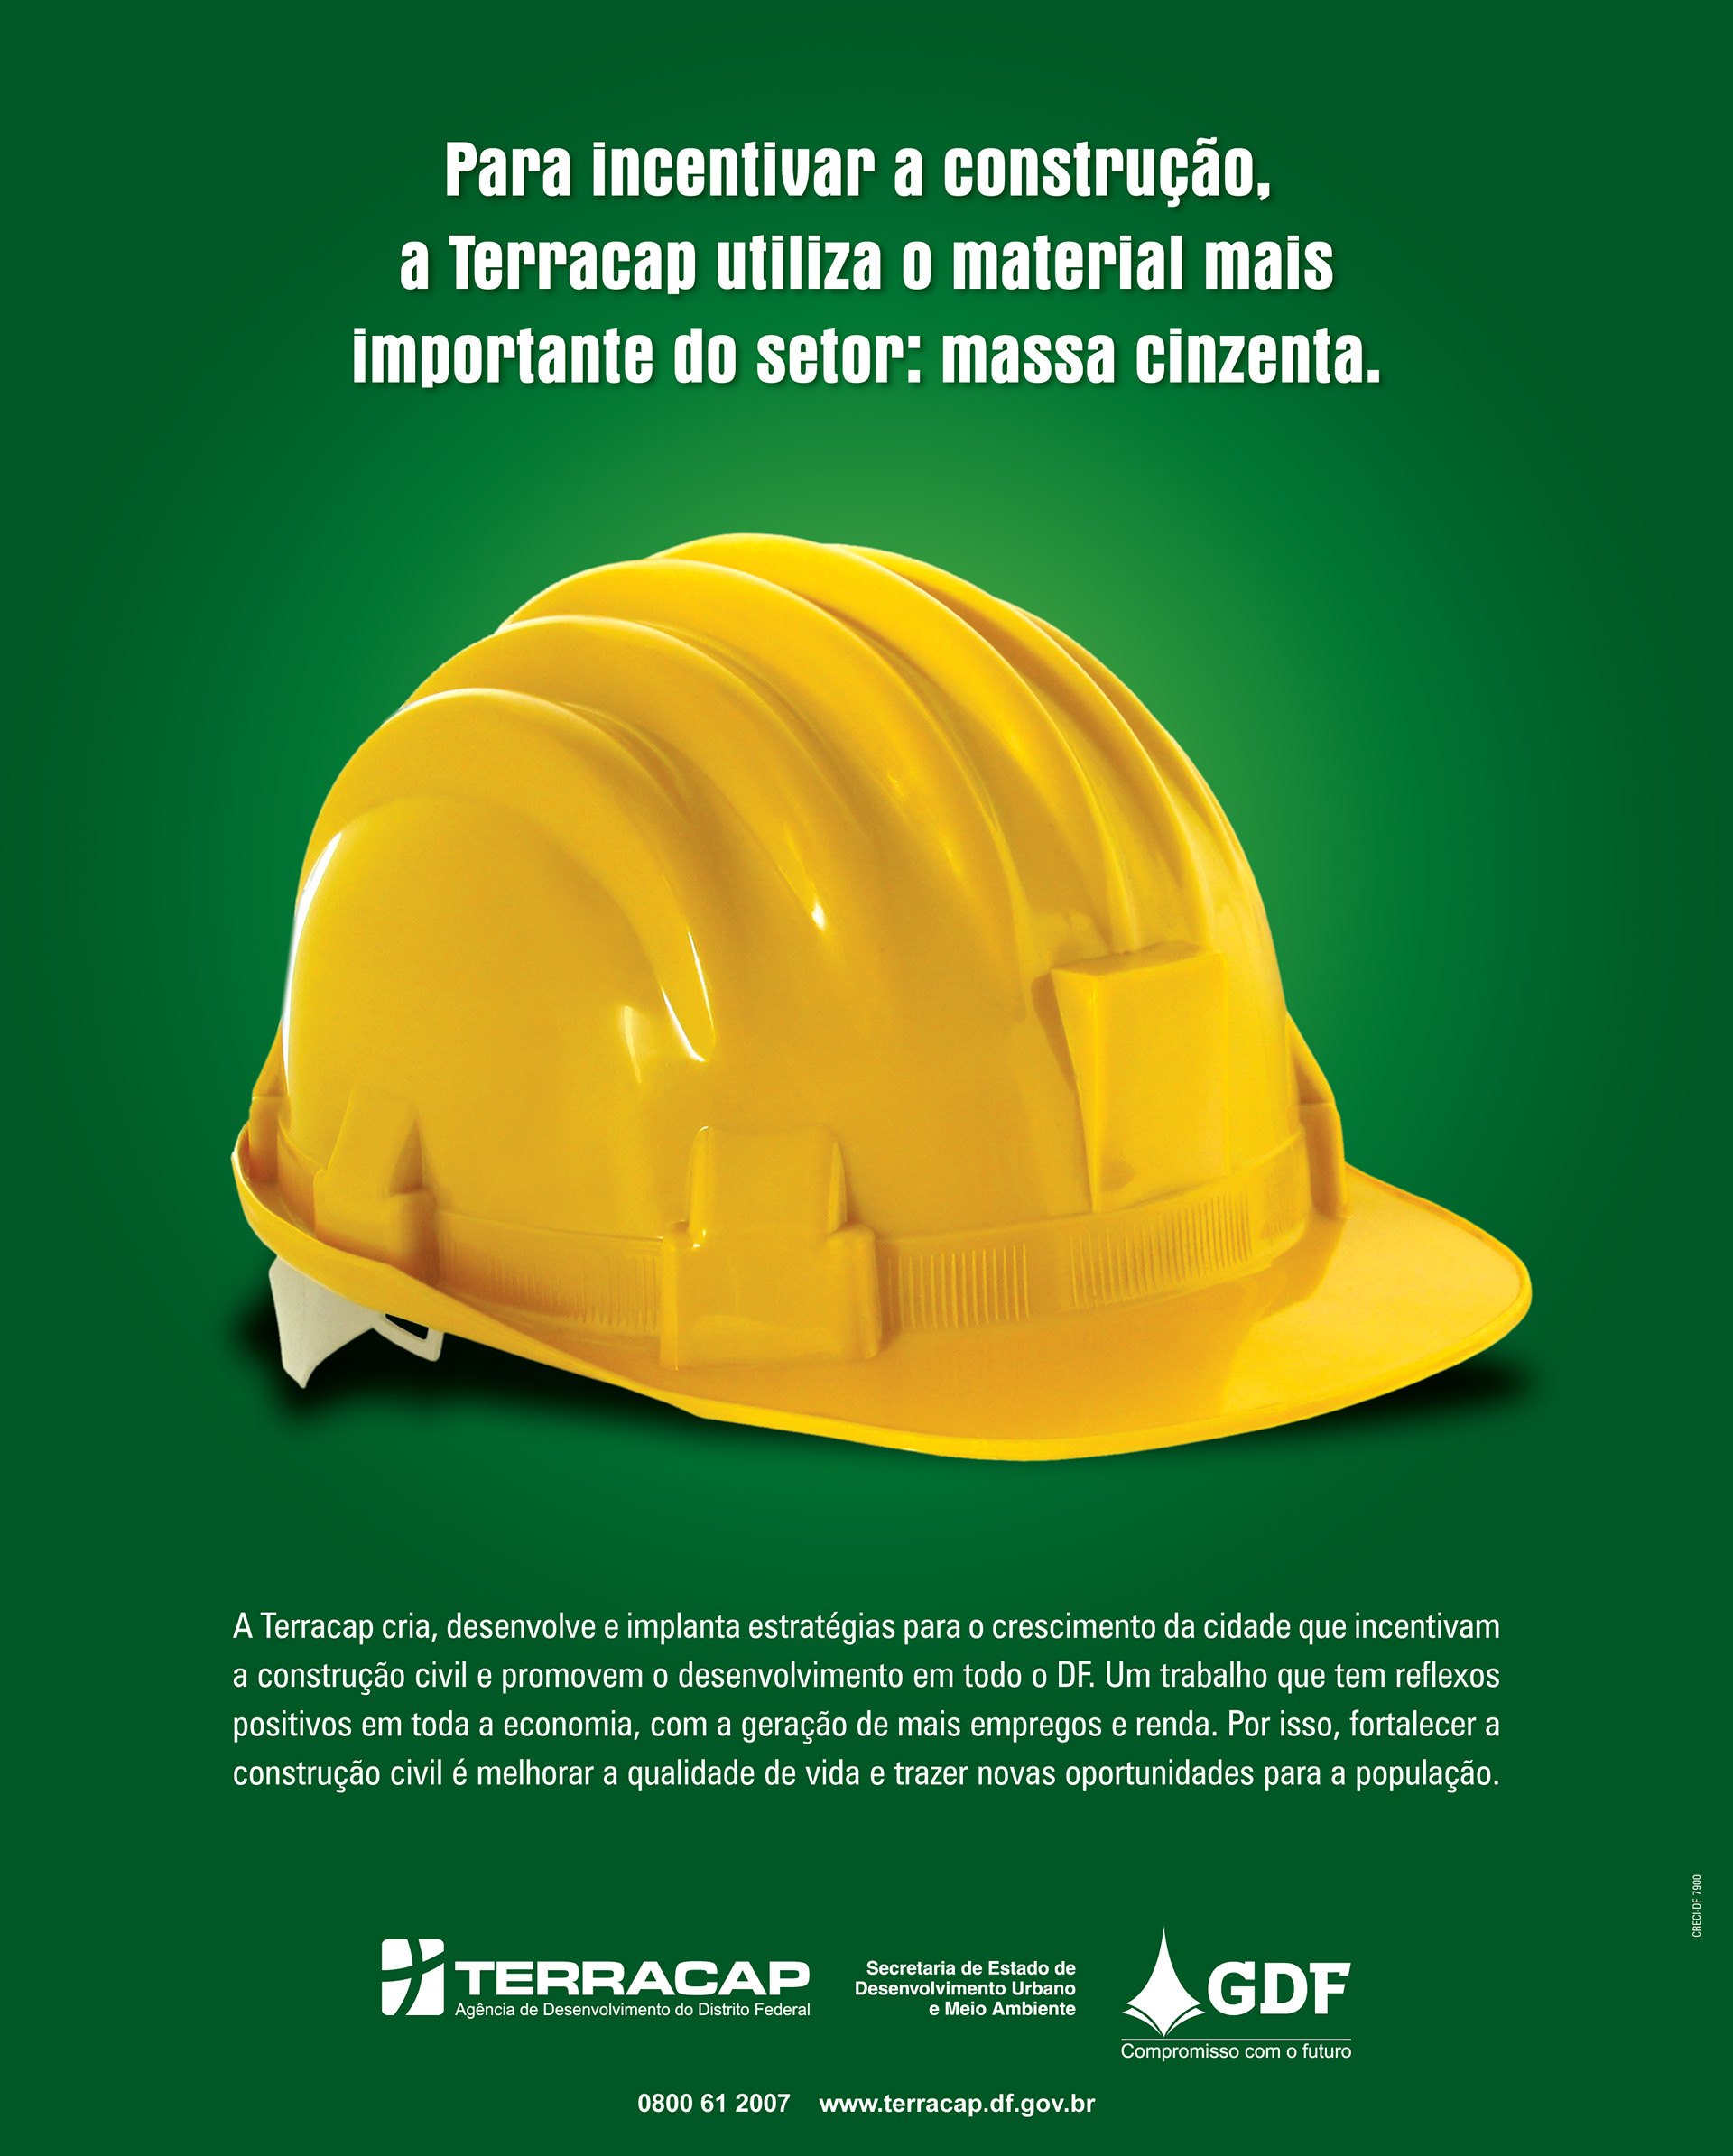 """""""To promote construction, Terracap uses the most important material for the  sector: grey matter"""". Grey matter, in this case, is a pun meaning either ..."""